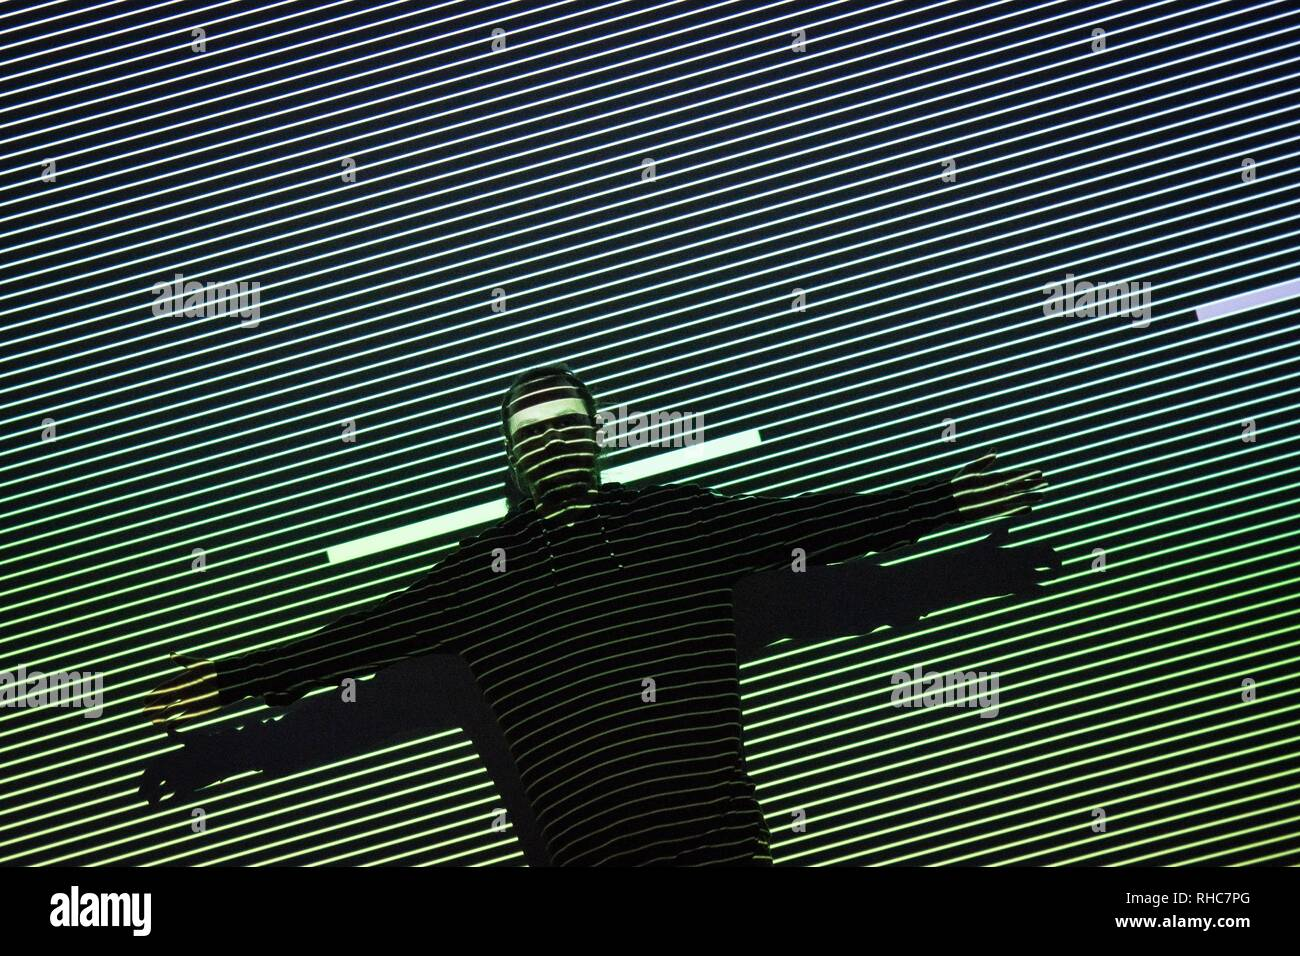 A visitor seen performing with the lights and effect of the Multimedia project Data Flux (12 XGA version) by Japanese artist Ryoji Ikeda at the Onassis Cultural Center in Athens. The Japanese artist presents an installation which challenges the limits of human perception and digital technology. With the precision of a metronome, twelve parallel video projectors synchronize with a minimalist electronic composition, turning numbers and data into the ultimate sensory experience for the visitor. Ryoji Ikeda uses the language and aesthetic of mathematics to compose countless sequential frames and p - Stock Image